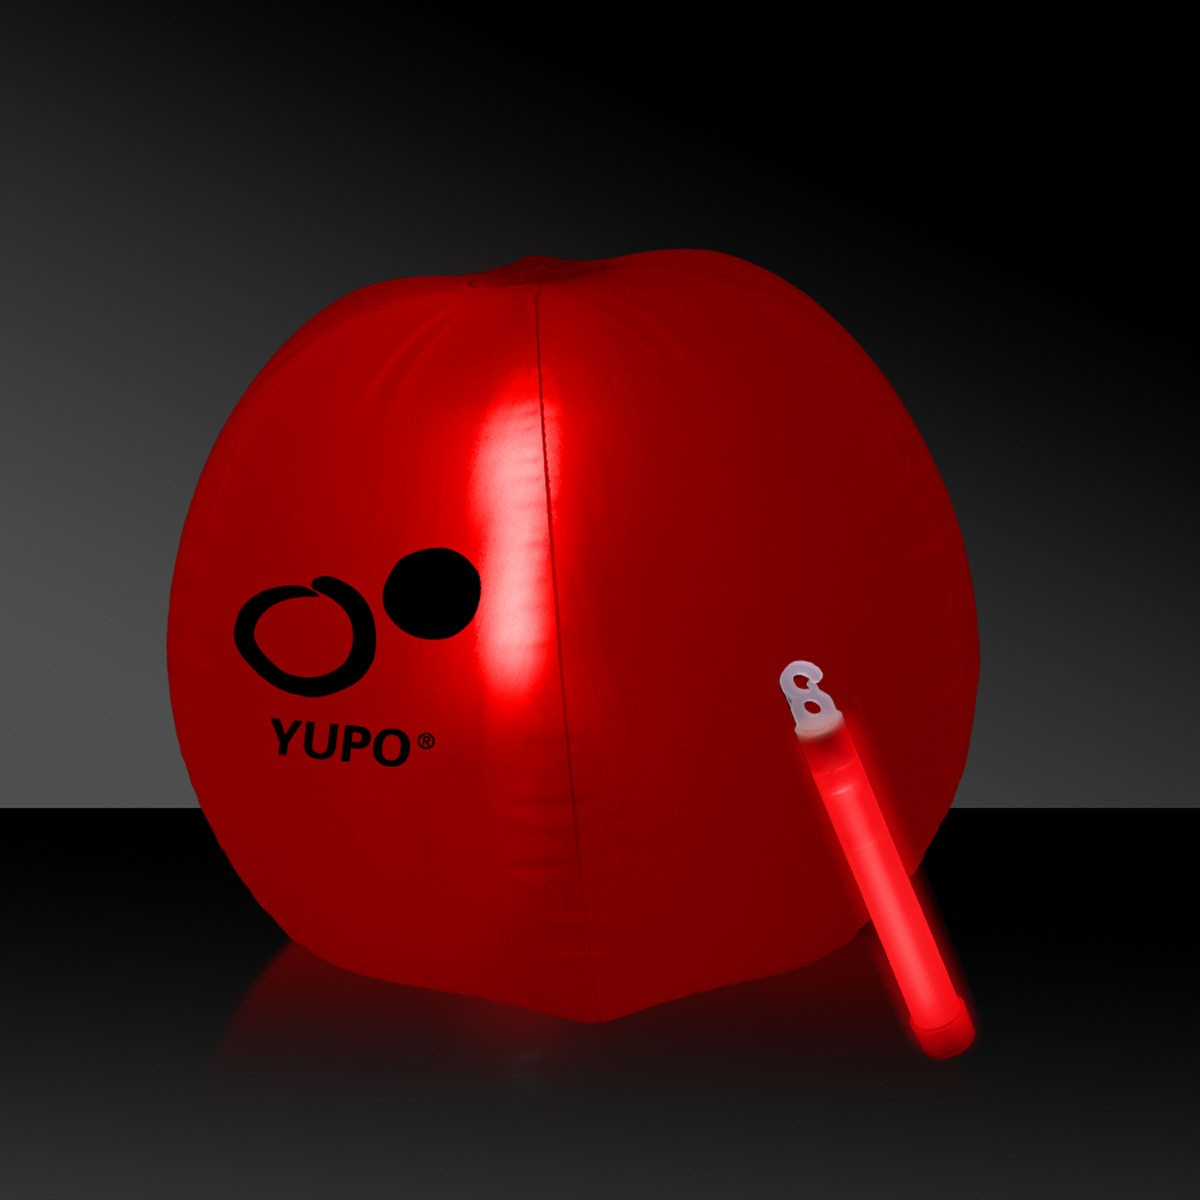 12 Inch Inflatable Beach Balls with 1 - 6 Inch RED Glow Stick